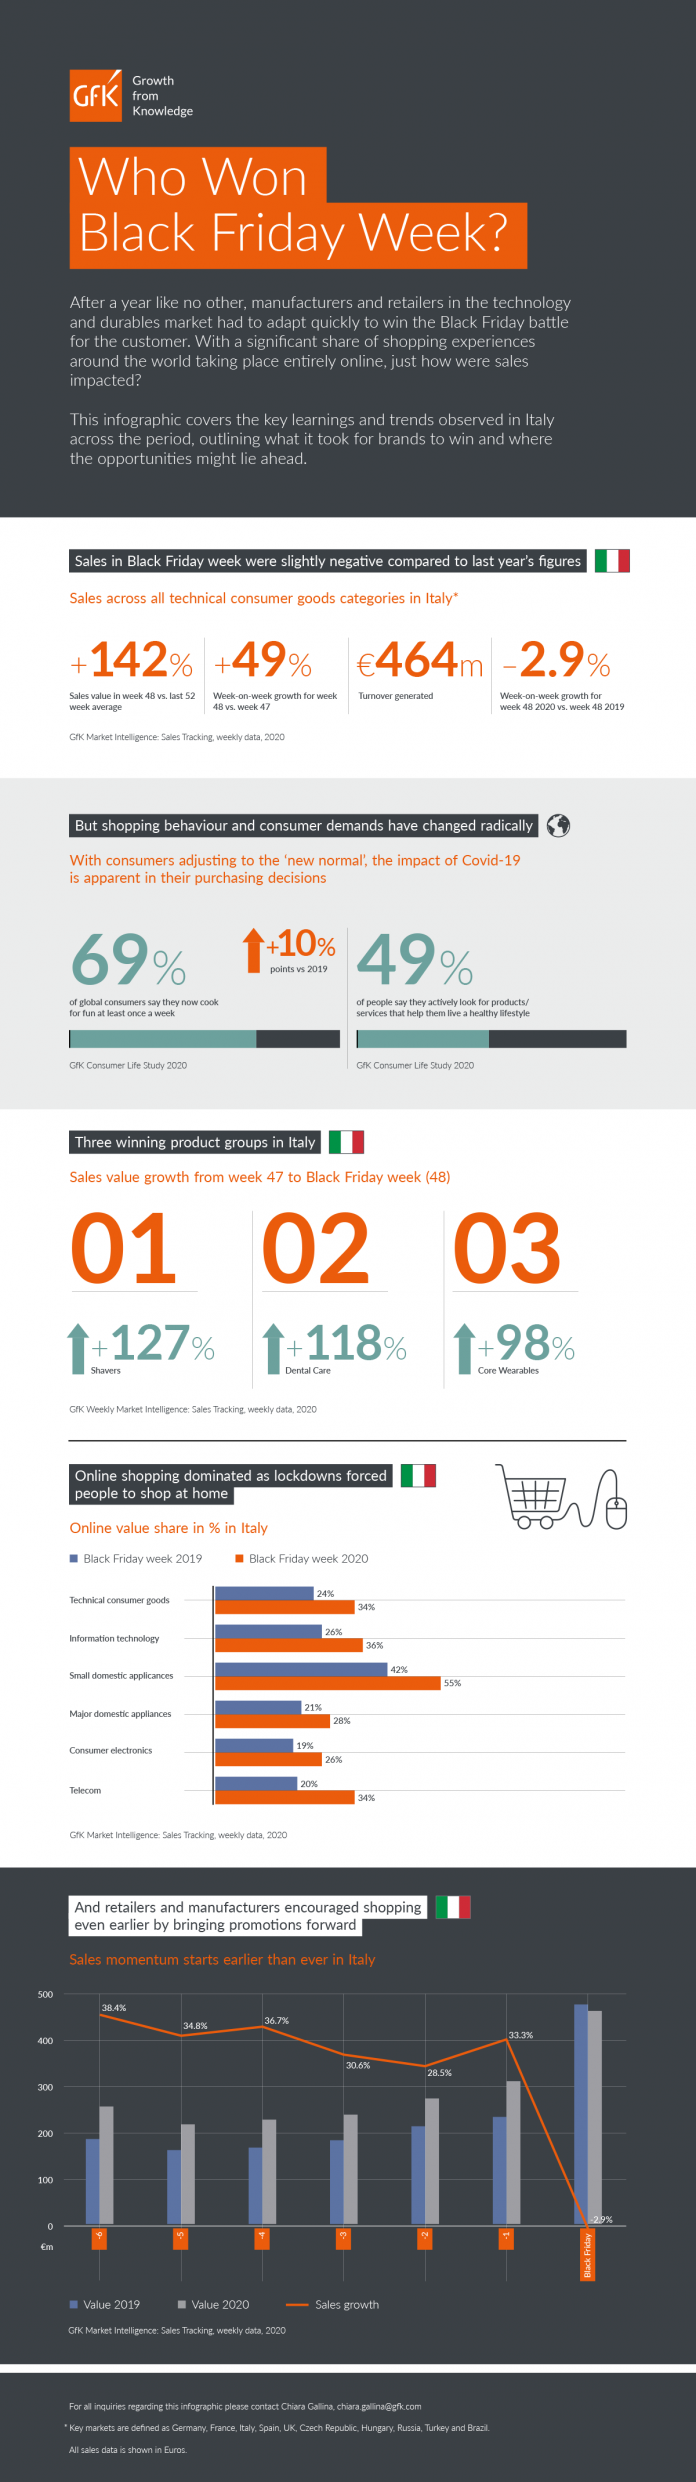 GfK_Black_Friday_Infographic_ITALY_final